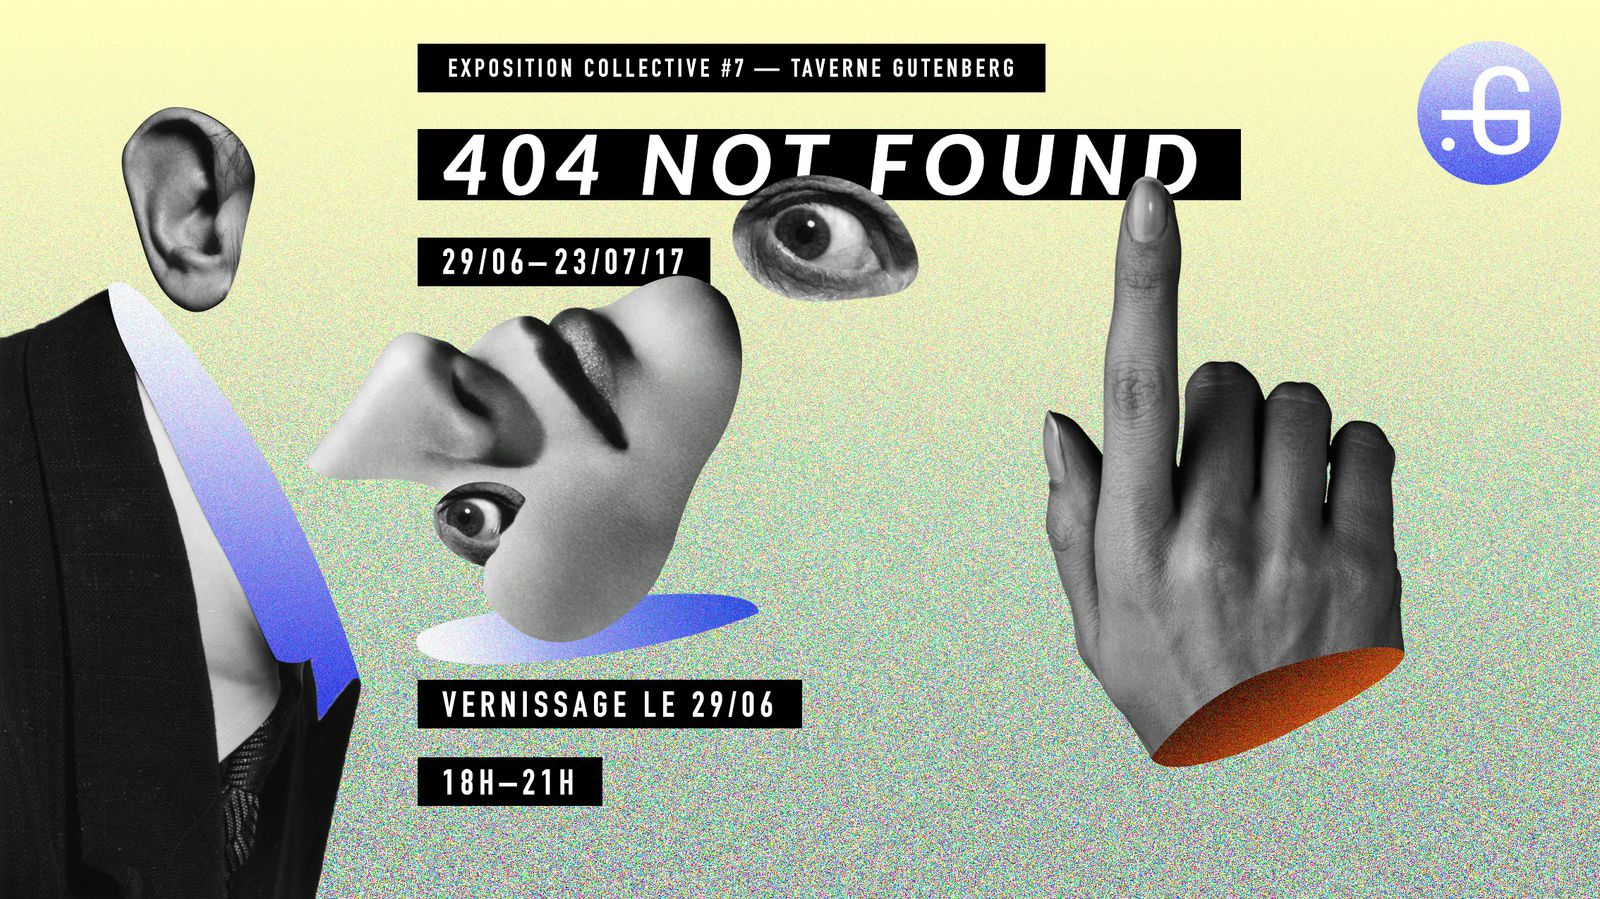 Expo collective #7 404 Not Found